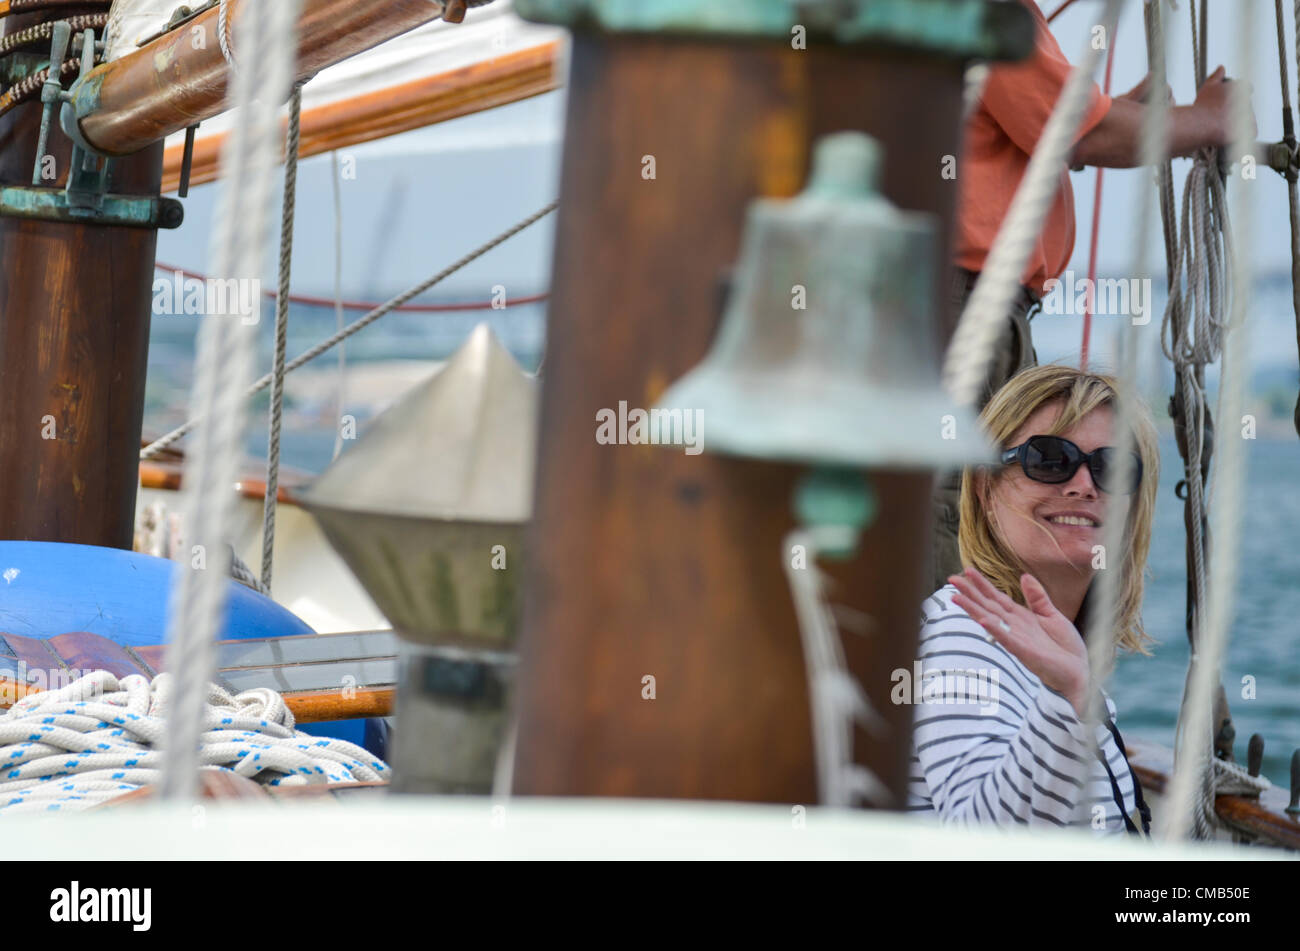 The Honorable Heather Somer, Mayor of Groton, Connecticut aboard the tall ship Schooner Tyrone during the Parade - Stock Image